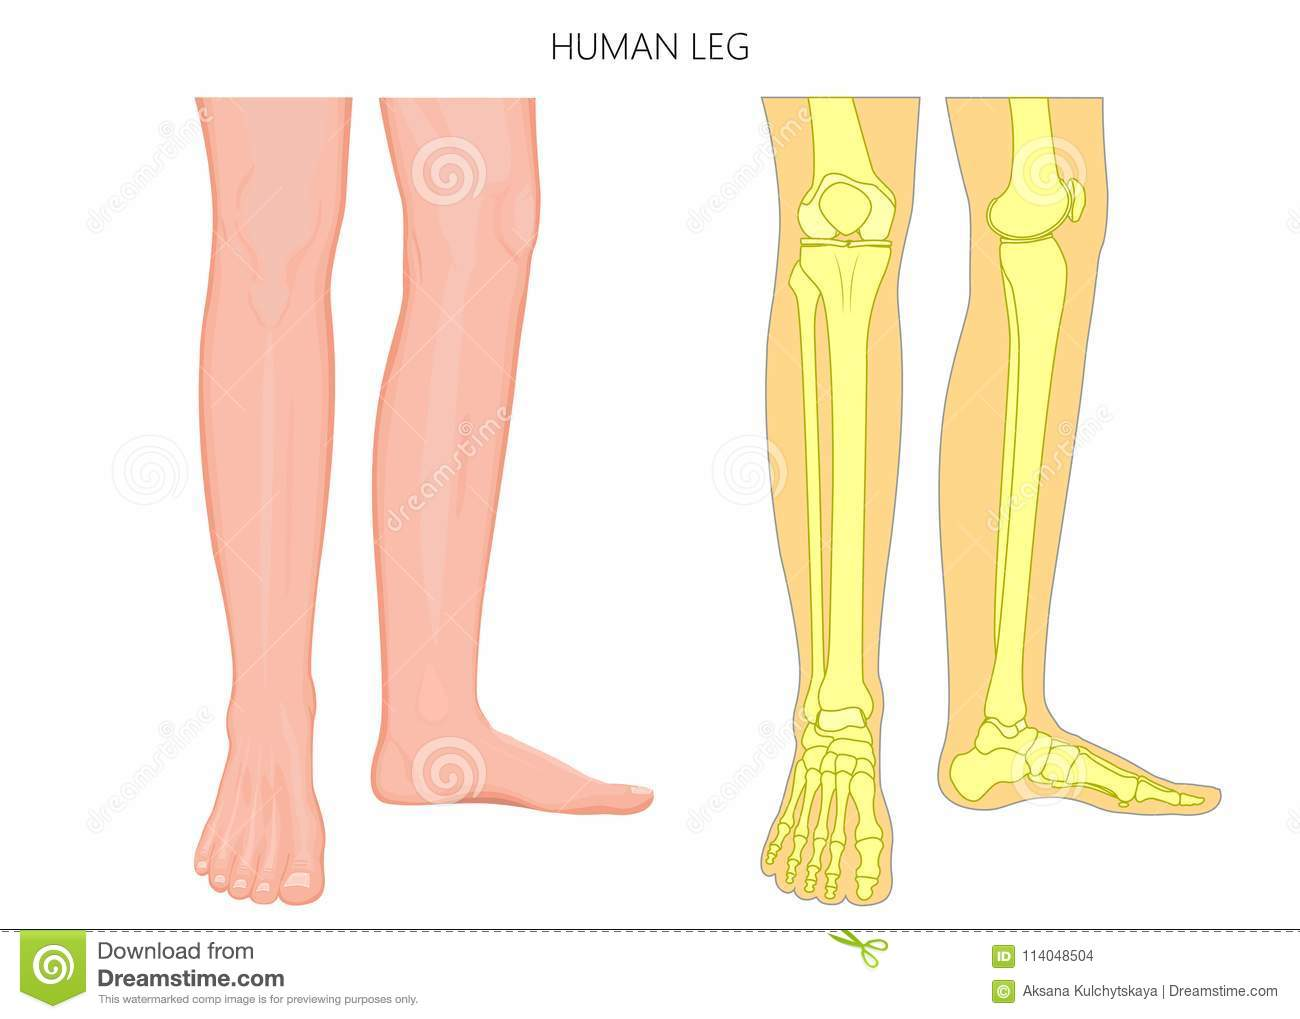 vector illustration anatomy of human legs and diagram of human bones  isolated on white background  for advertising and medical publications  eps  10